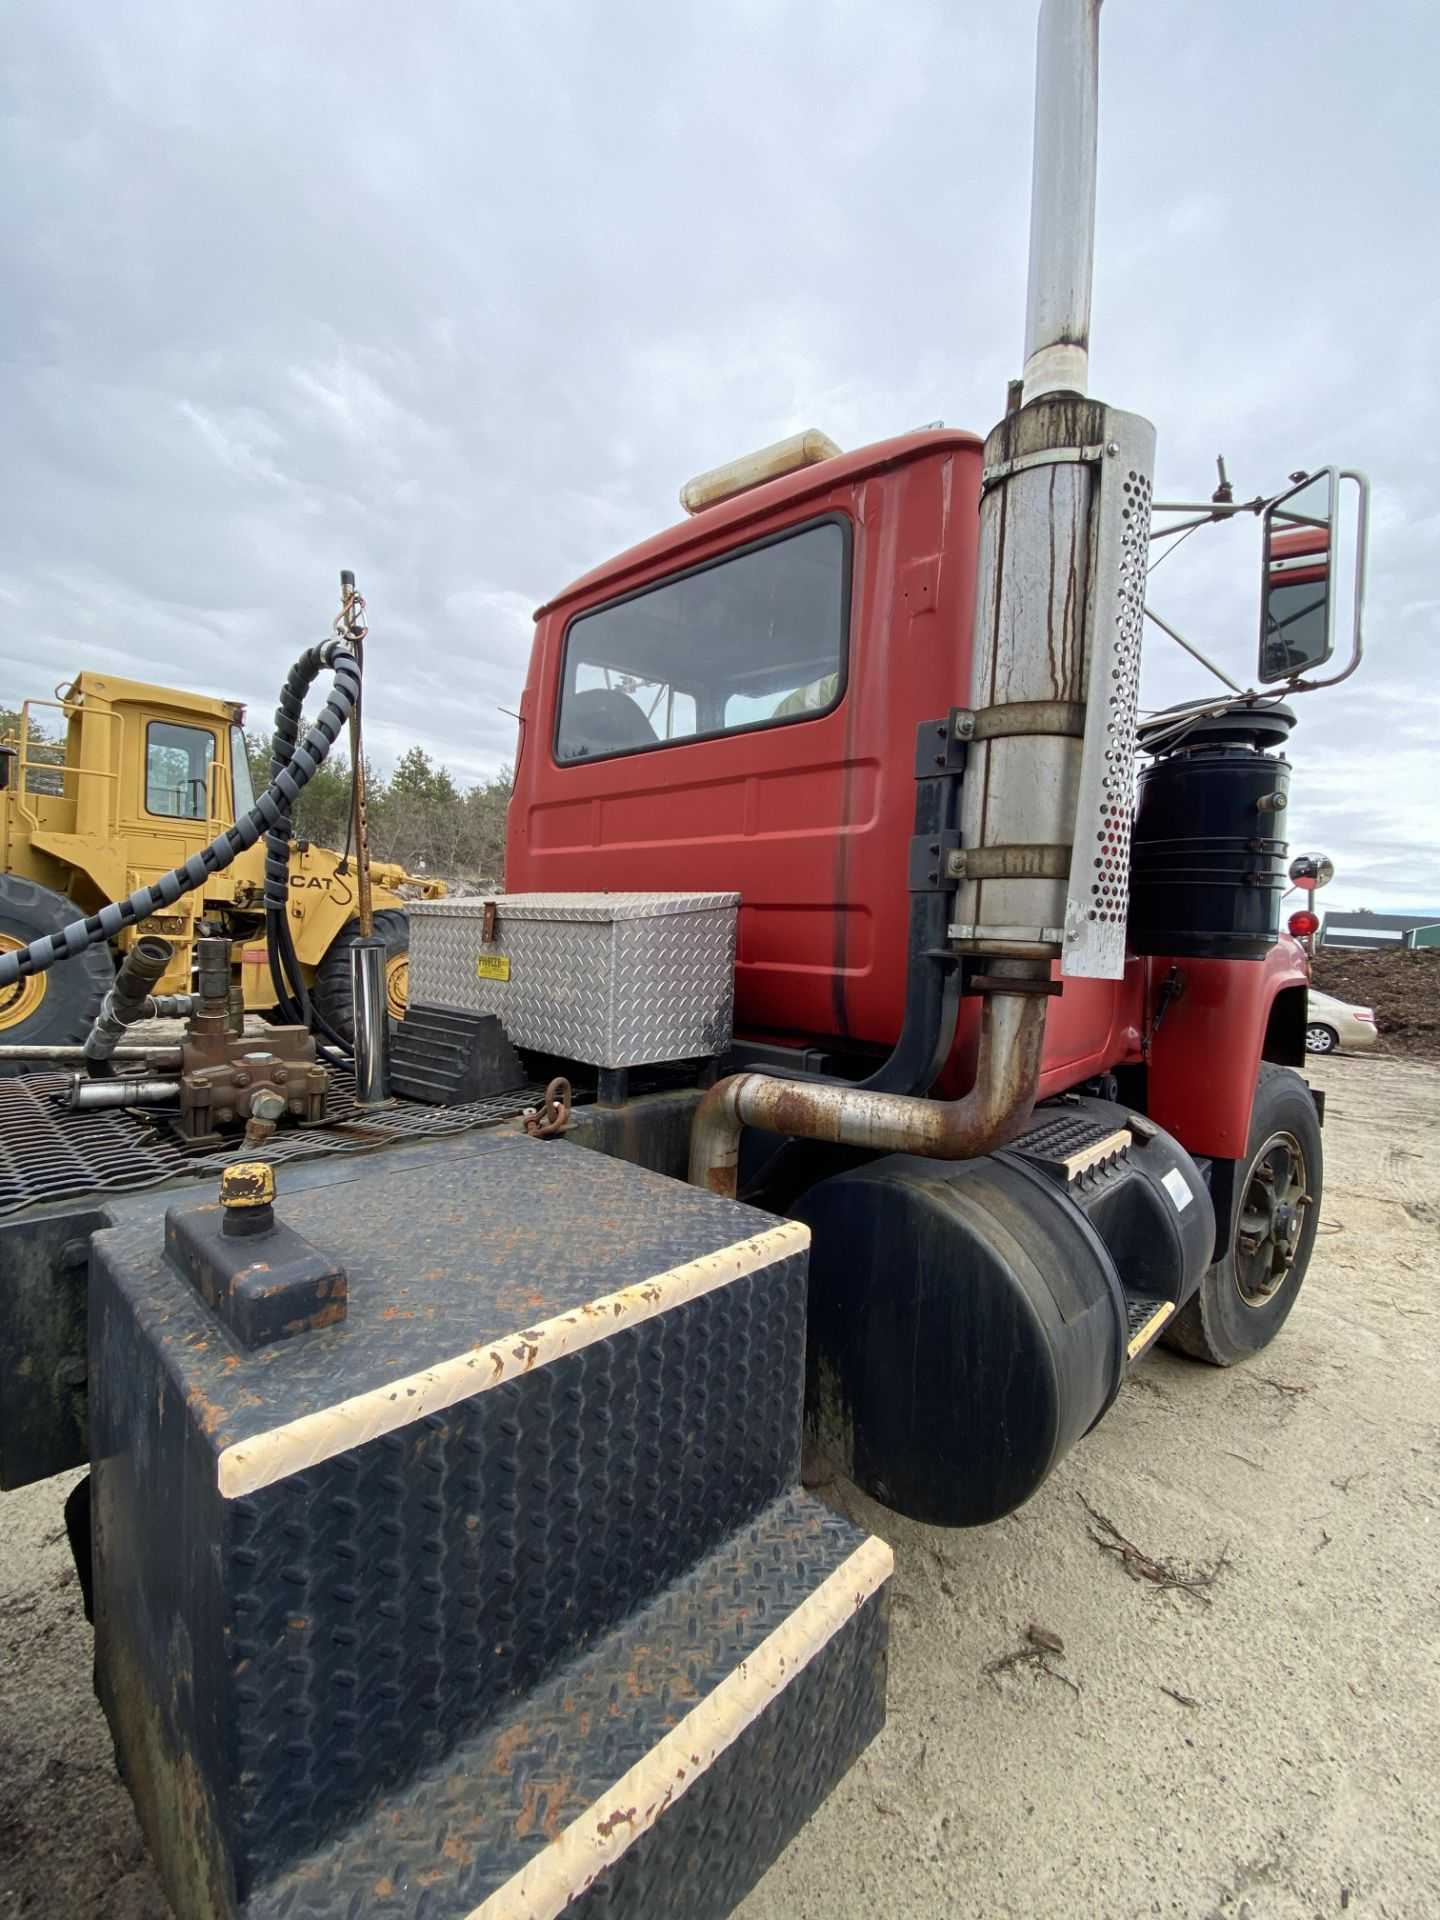 1986 Mack RD688SX Tandem Axle Tractor VIN 1M2P143Y8GA004351, Meter Reads 301,625 Miles, Day Cab, - Image 16 of 22